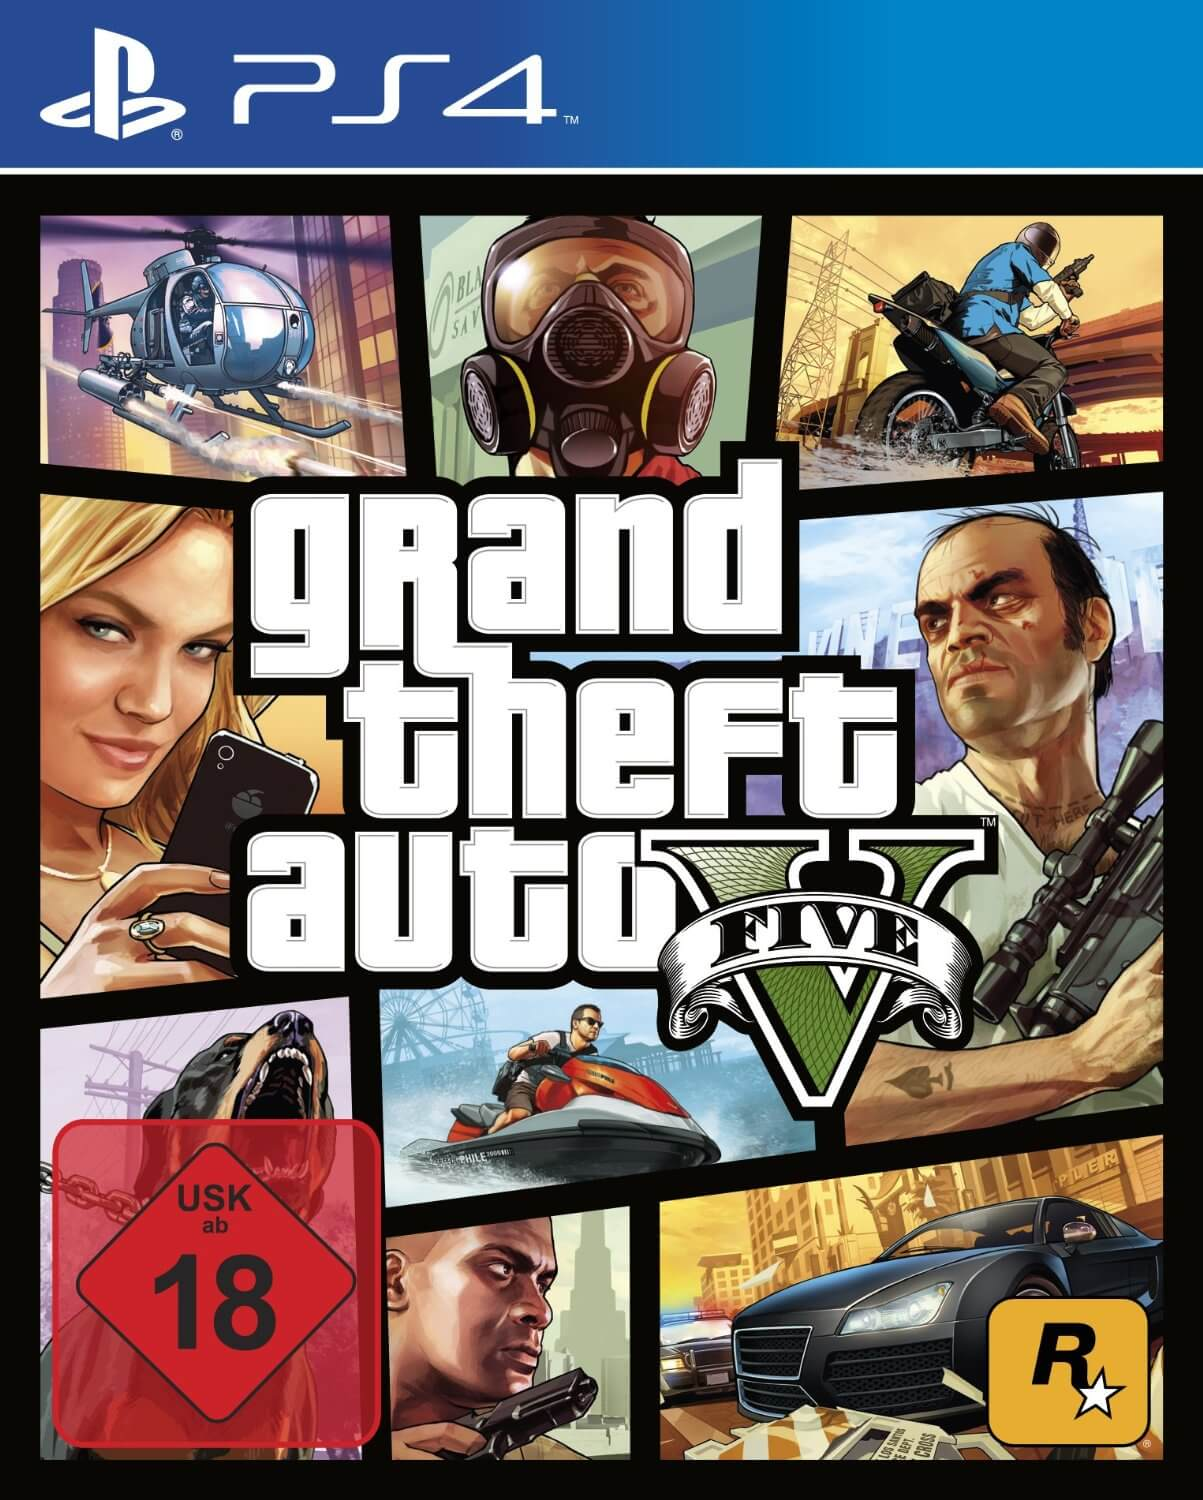 gta v, gta v cheats, gta vice city, gta v mods, gta vice city cheats, gta v cheats ps4, gta v ps4, gta v cheats pc, gta vice city cheats psp, gta vi, gta v pc, gta v online, gta v update, gta v aktien, gta v cheats xbox 360, GTA V Free Download, GTA V Hack, GTA V Online Hack, GTA V no cd crack, gta V Download, GTA V Test, GTA V Trailer, GTA V Lösung, GTA V Money Hack, GTA V Glitch, GTA V Mod Menu, GTA V Erfahrung, GTA V Testbericht, GTA V Günstig, GTA V Review, GTA V billig, GTA V kaufen